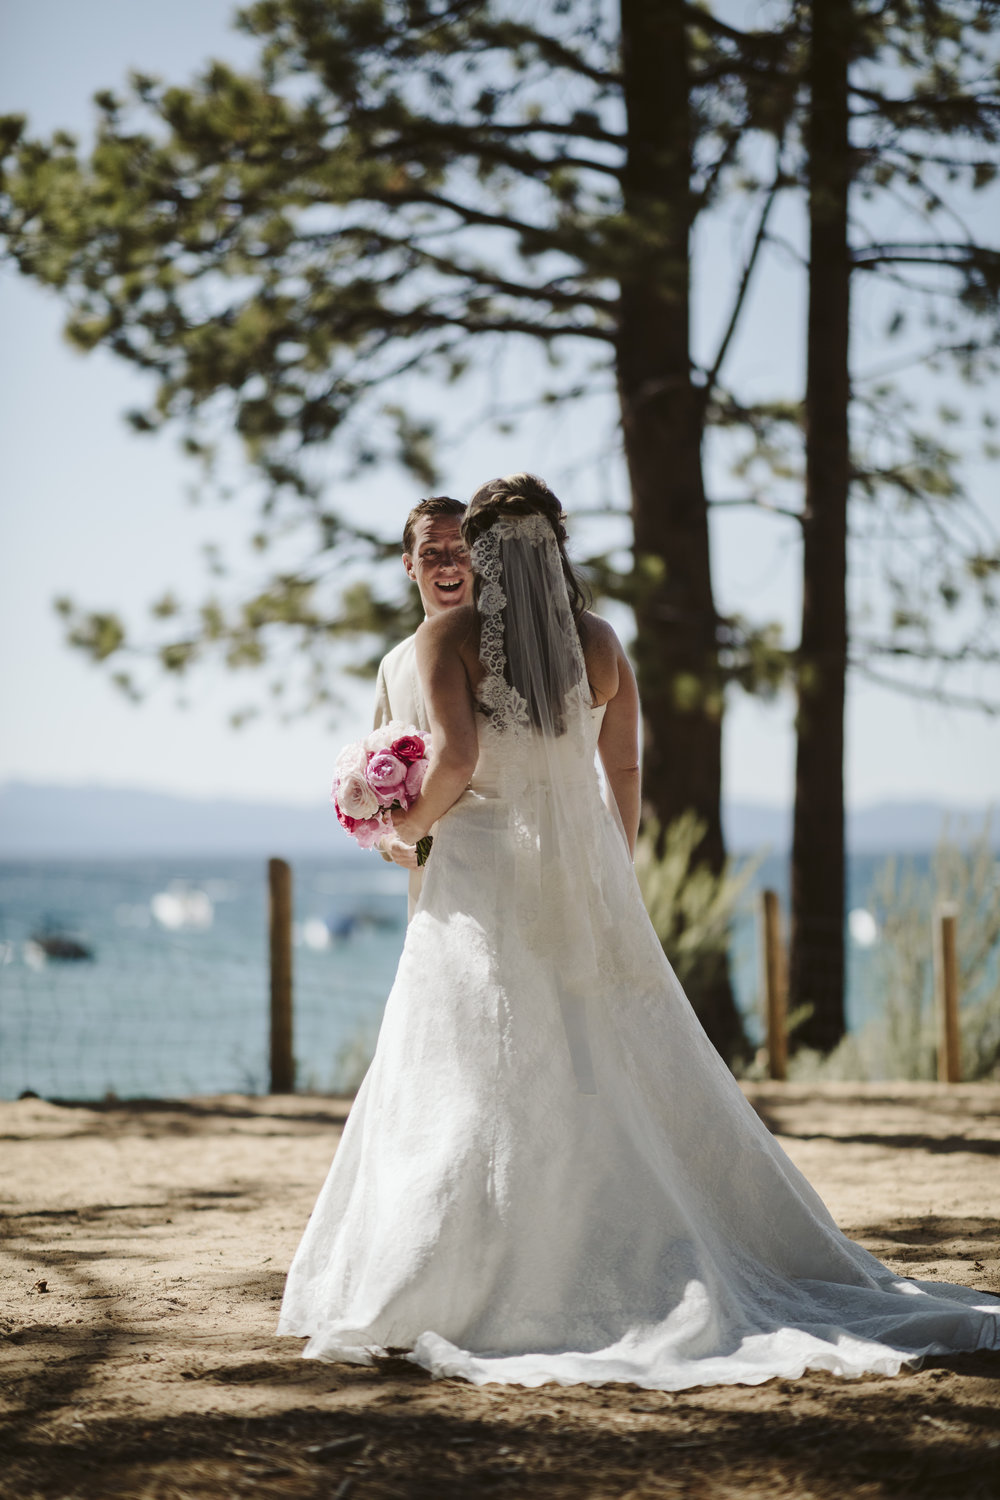 _P8A2220vildphotography-adventurewedding-tahoe-laketahoewedding-laketahoeweddingphotographer-tahoewedding-jamie-ed.jpg